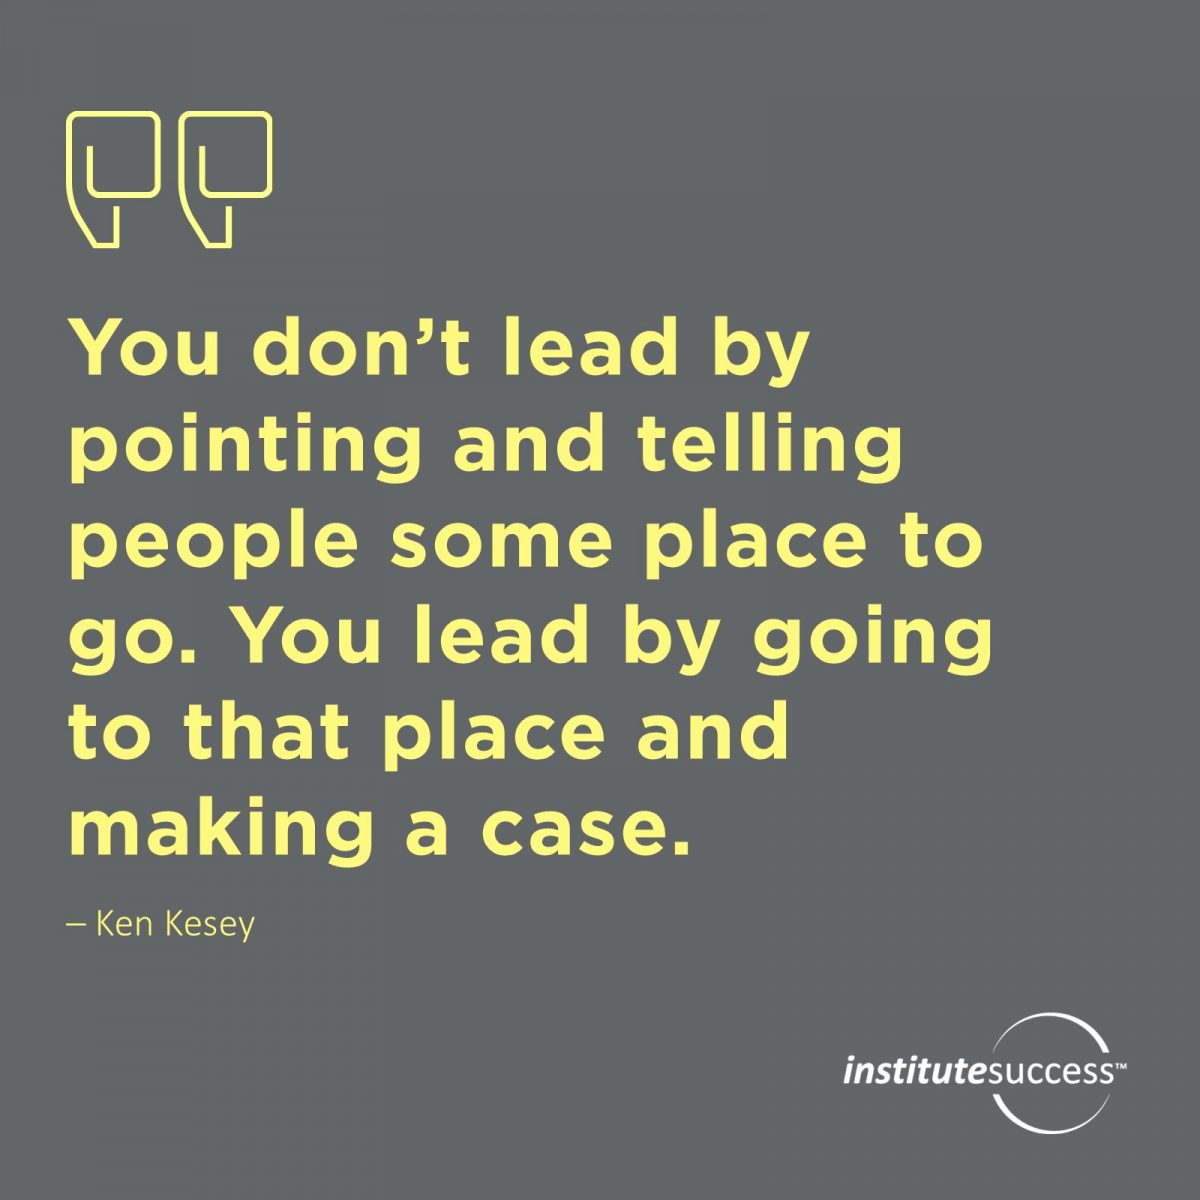 You don't lead by pointing and telling people some place to go. You lead by going to that place and making a case. – Ken KeseyYou don't lead by pointing and telling people some place to go. You lead by going to that place and making a case. – Ken Kesey